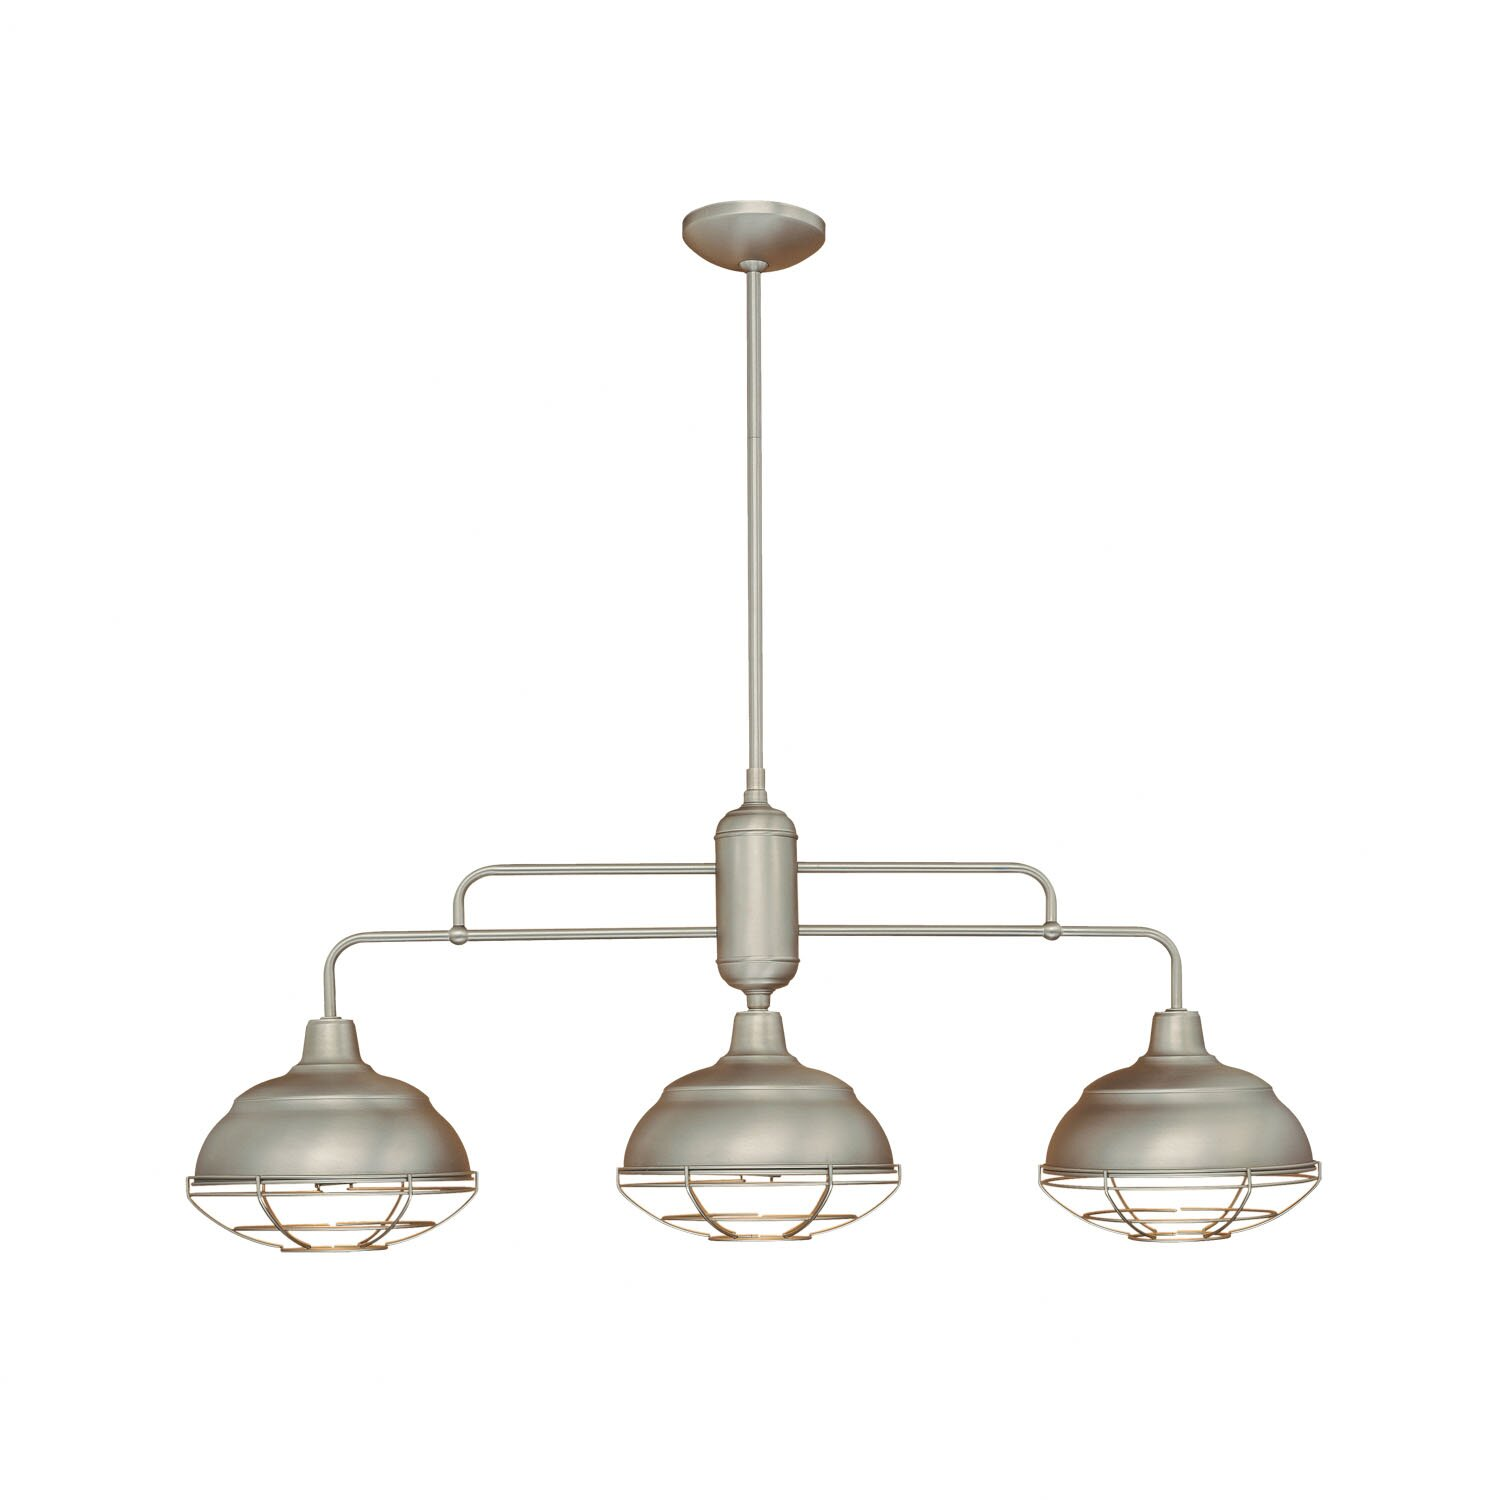 Millennium lighting neo industrial 3 light kitchen island pendant reviews wayfair - Industrial lighting fixtures for kitchen ...